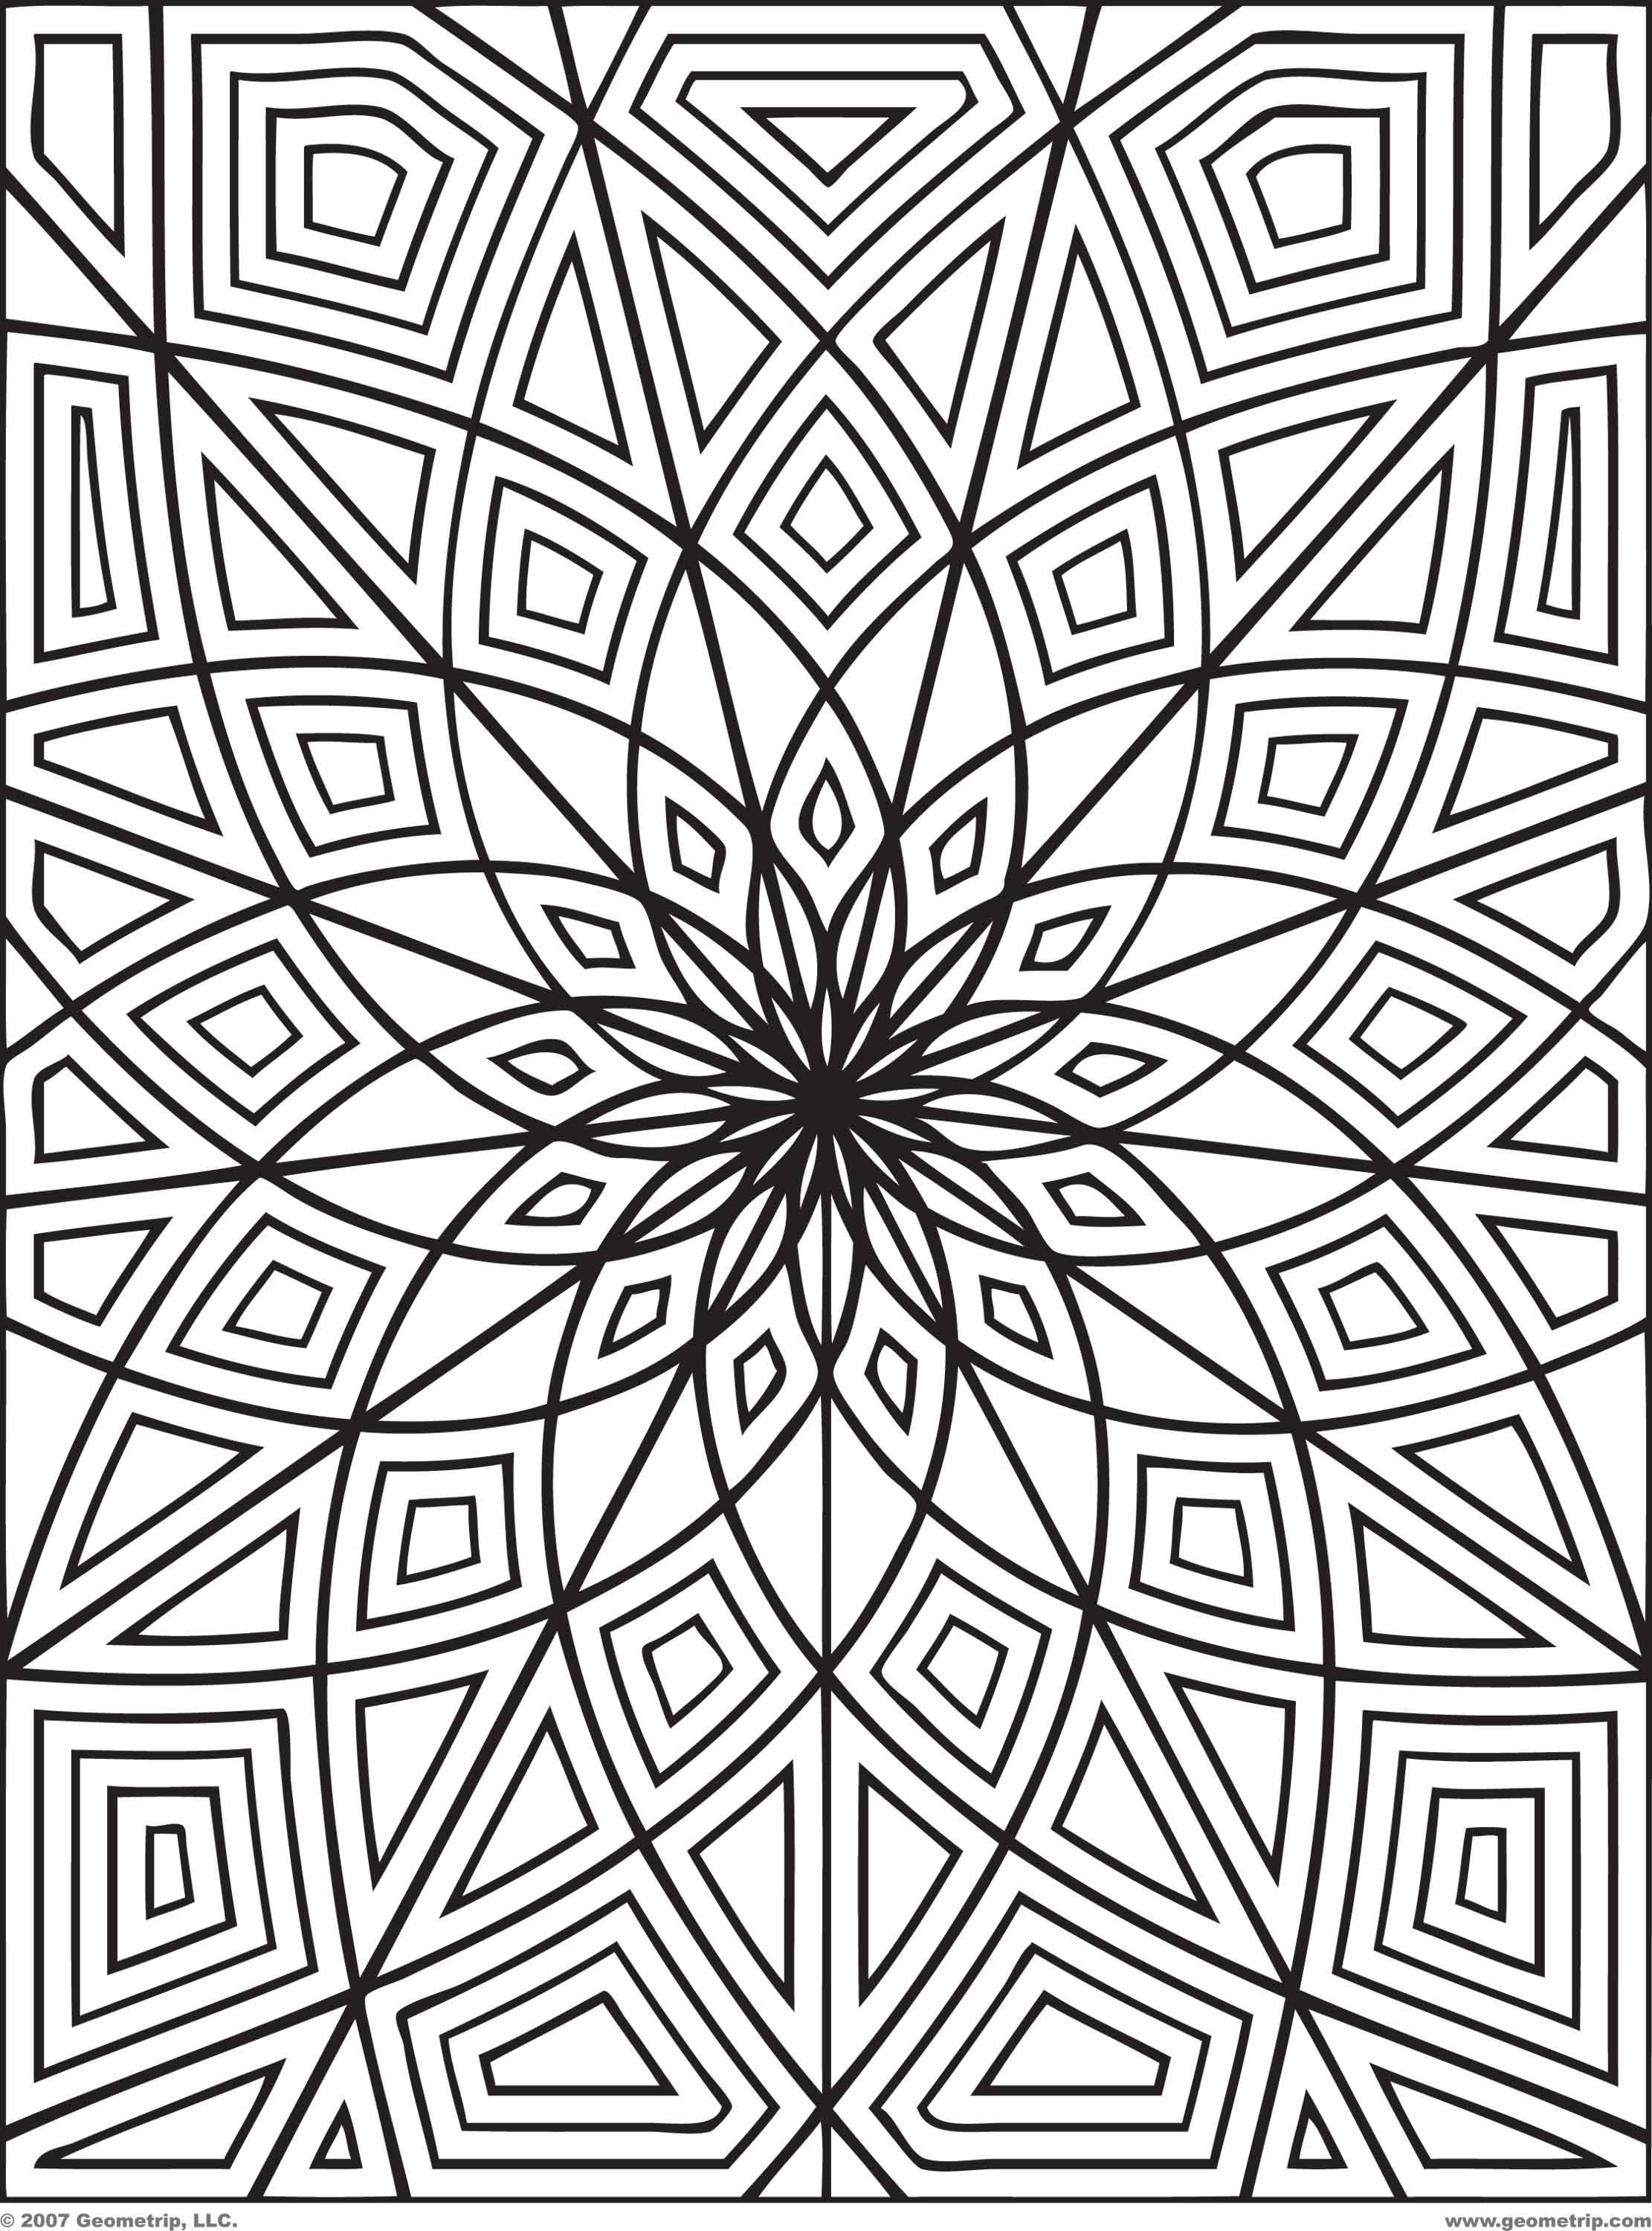 Coloring Pages for Adults  Abstract coloring pages, Geometric